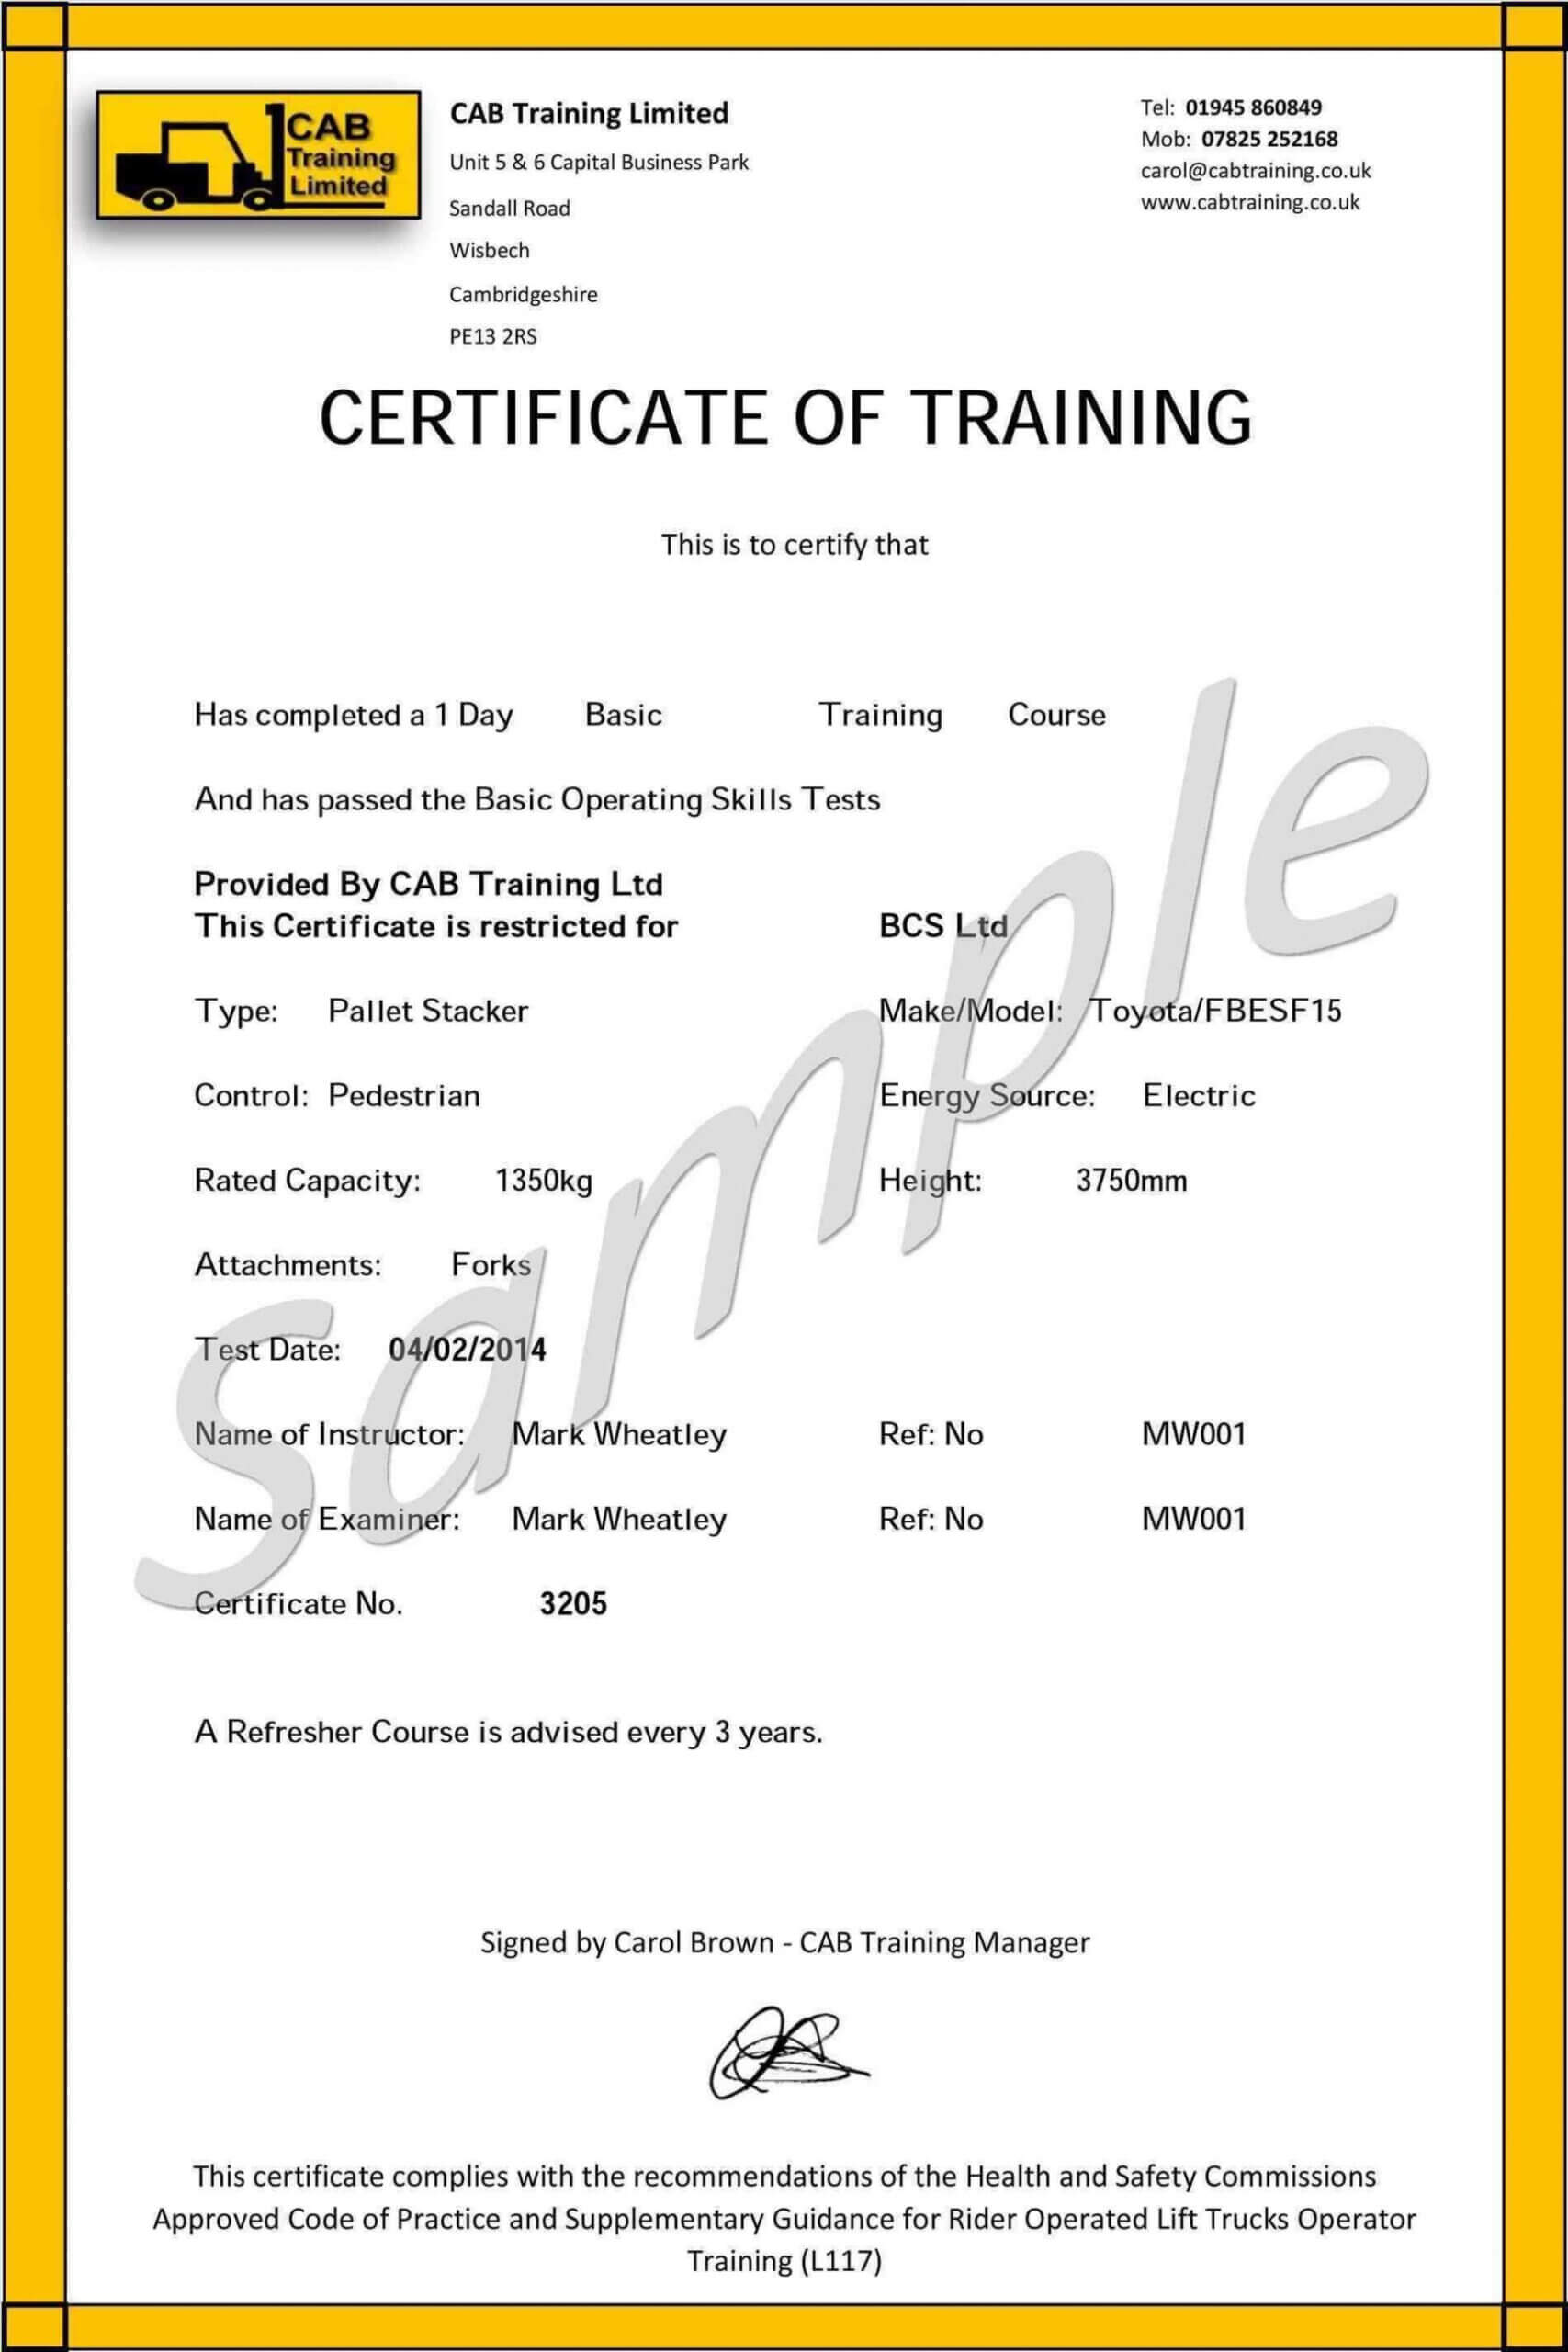 009 Forklift Certification Card Template Free Original With Regard To Forklift Certification Template